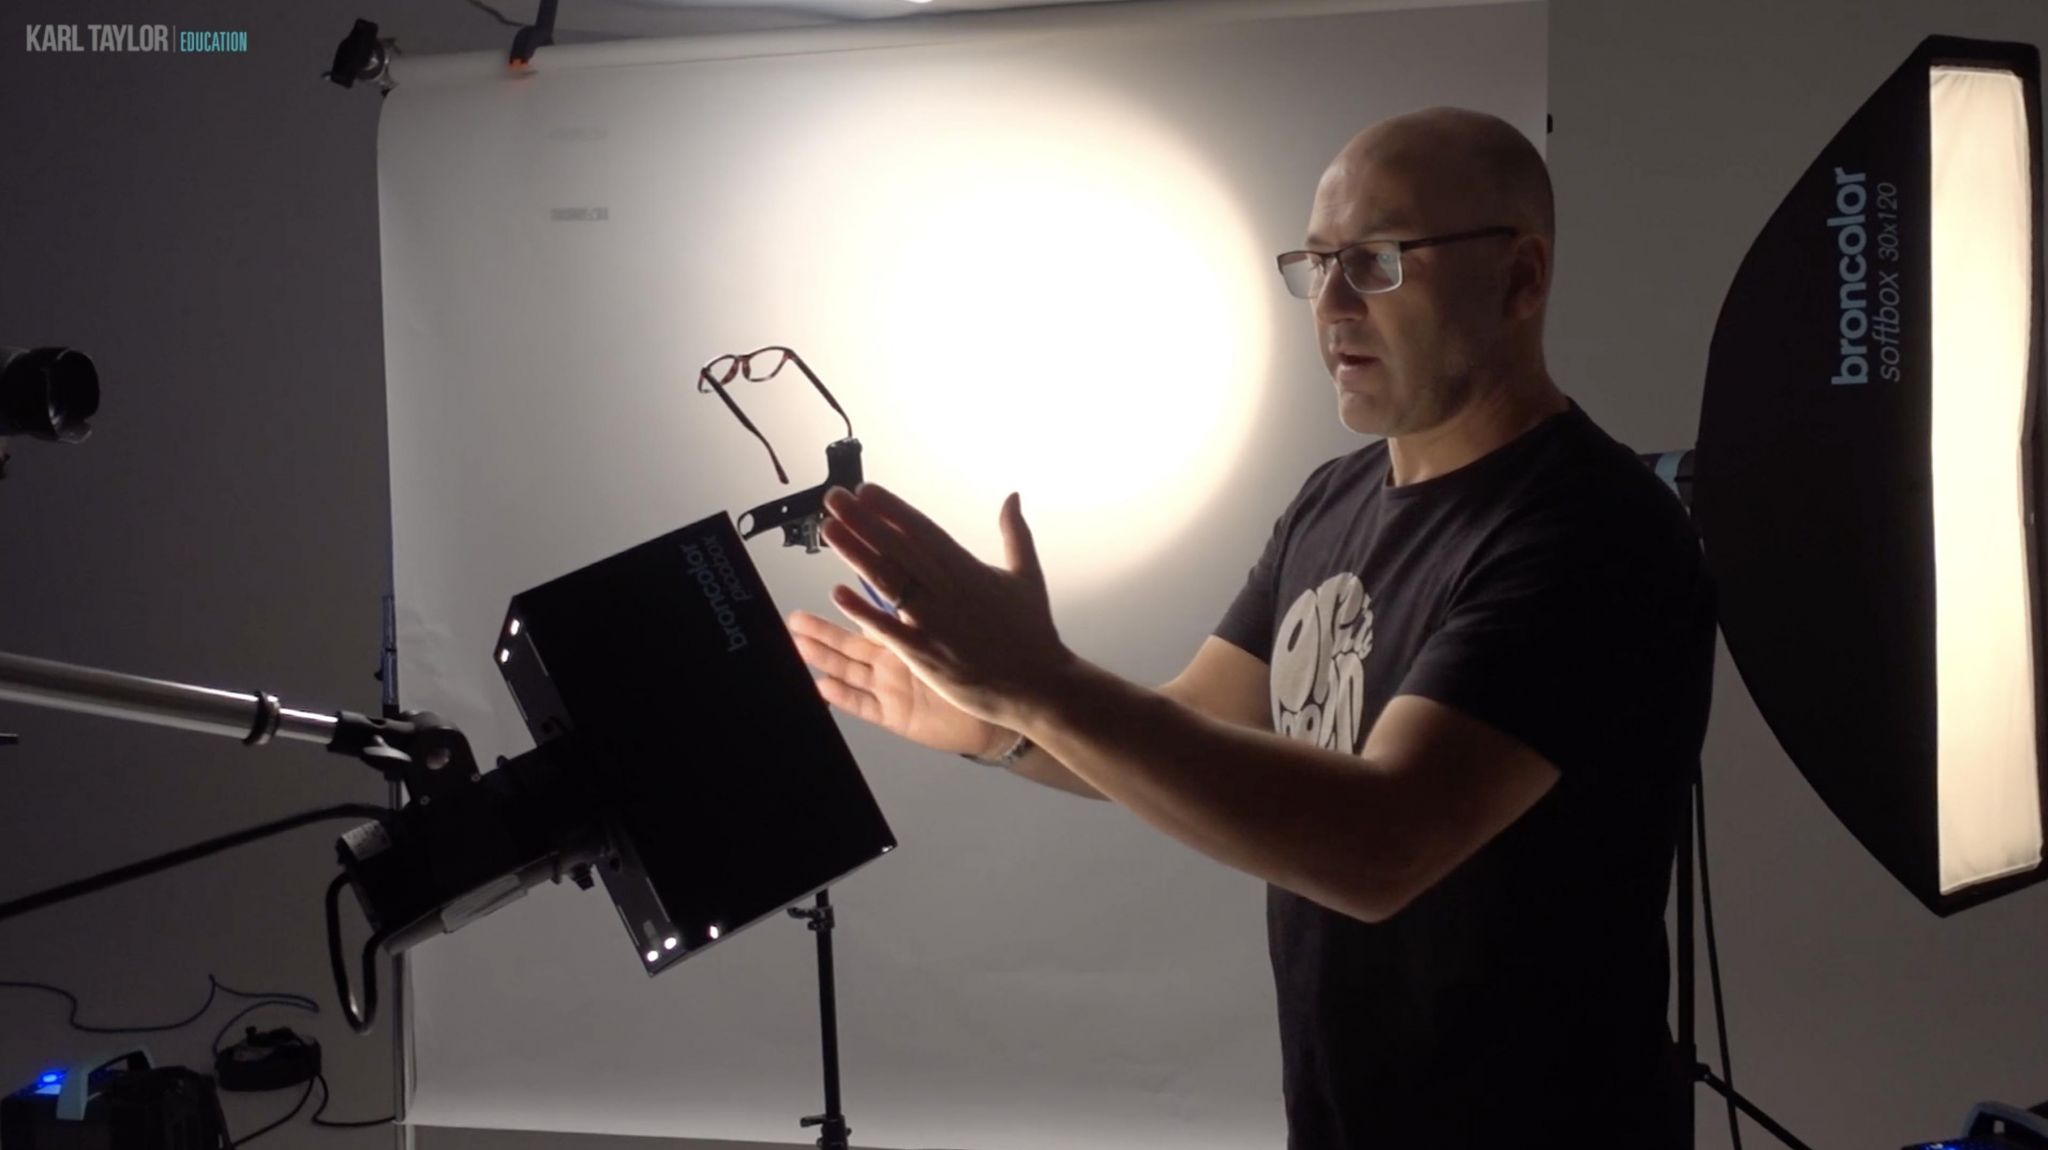 Product photography tutorial: How to photograph glasses using reverse tilt-shift